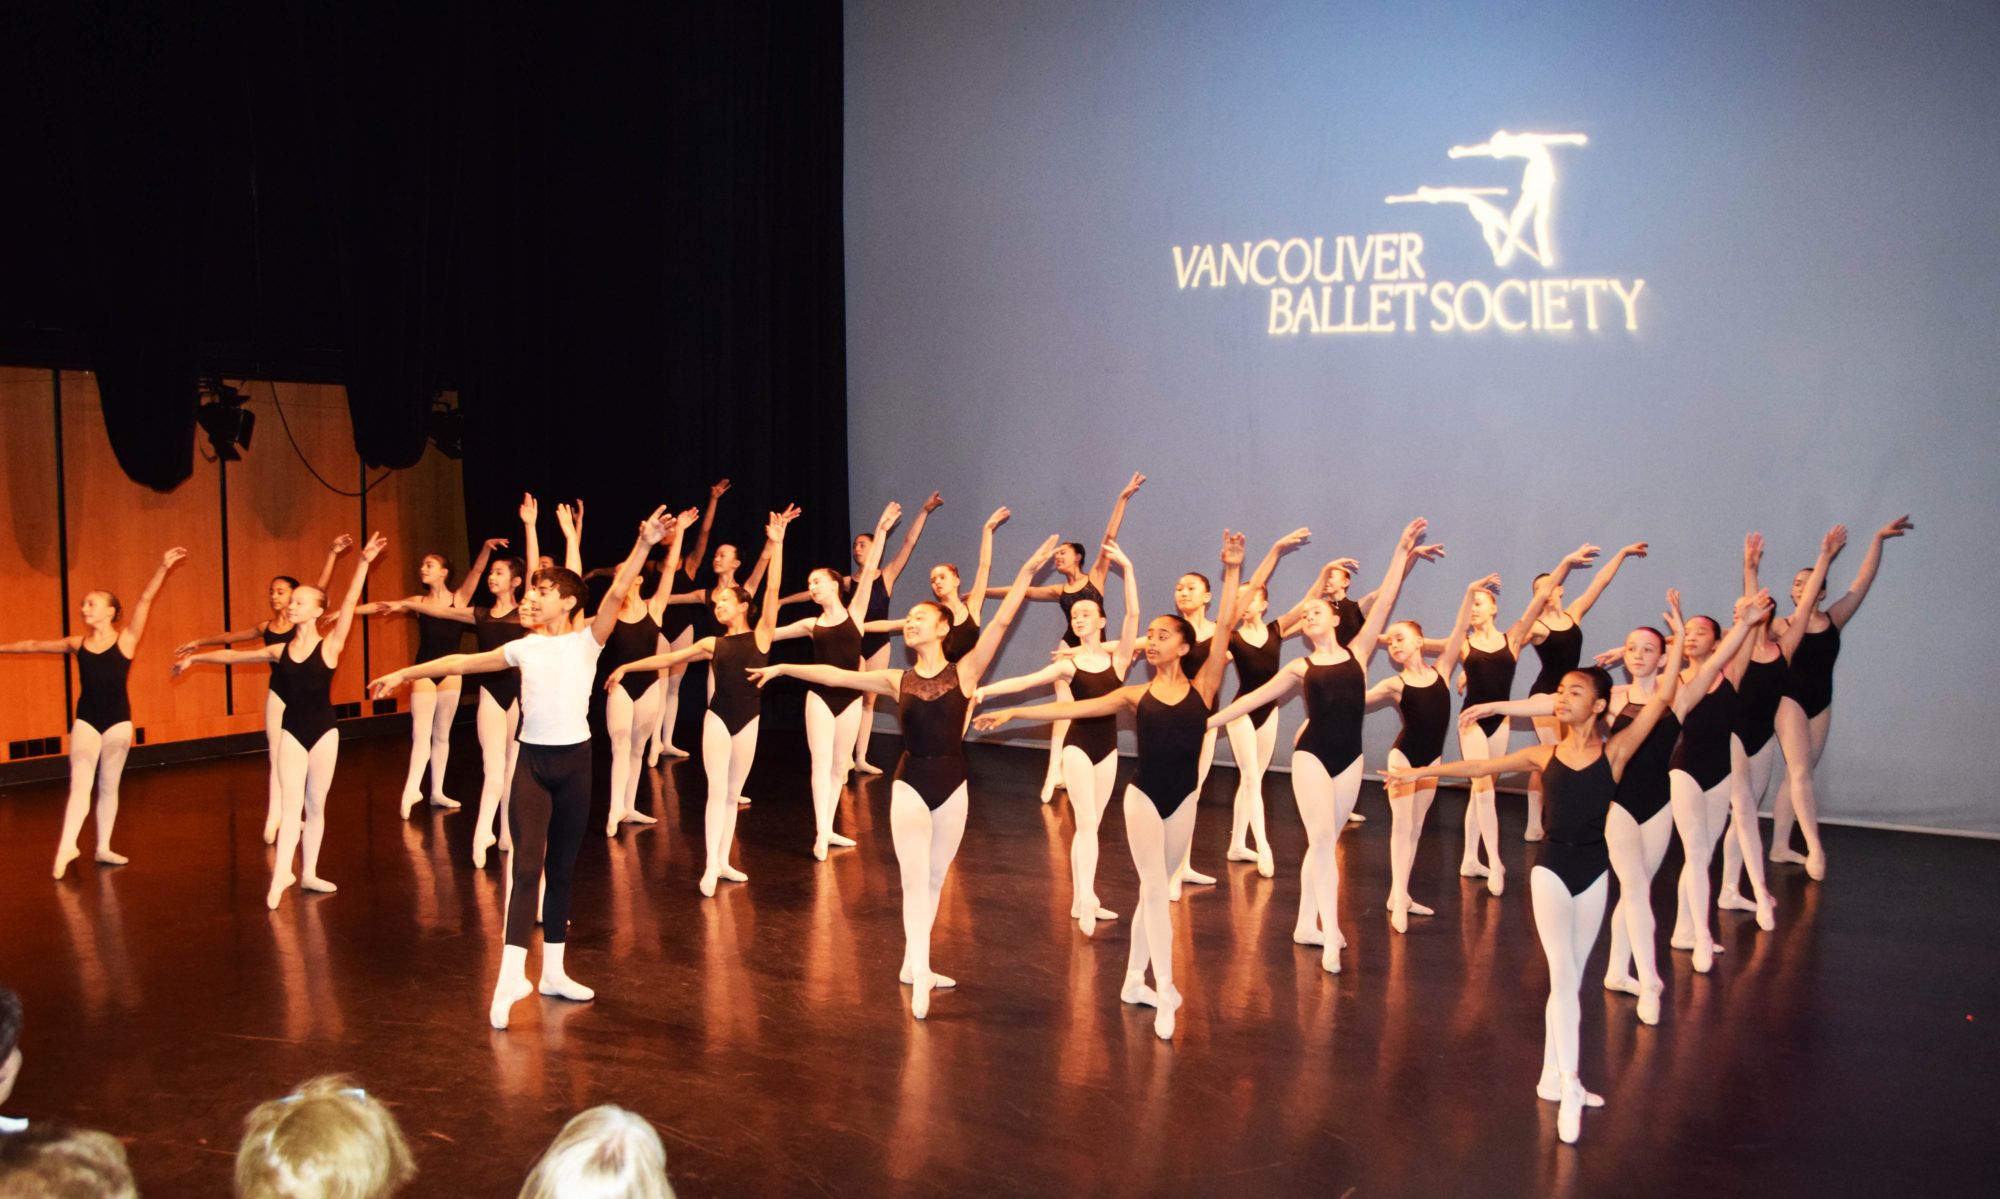 Vancouver Ballet Society